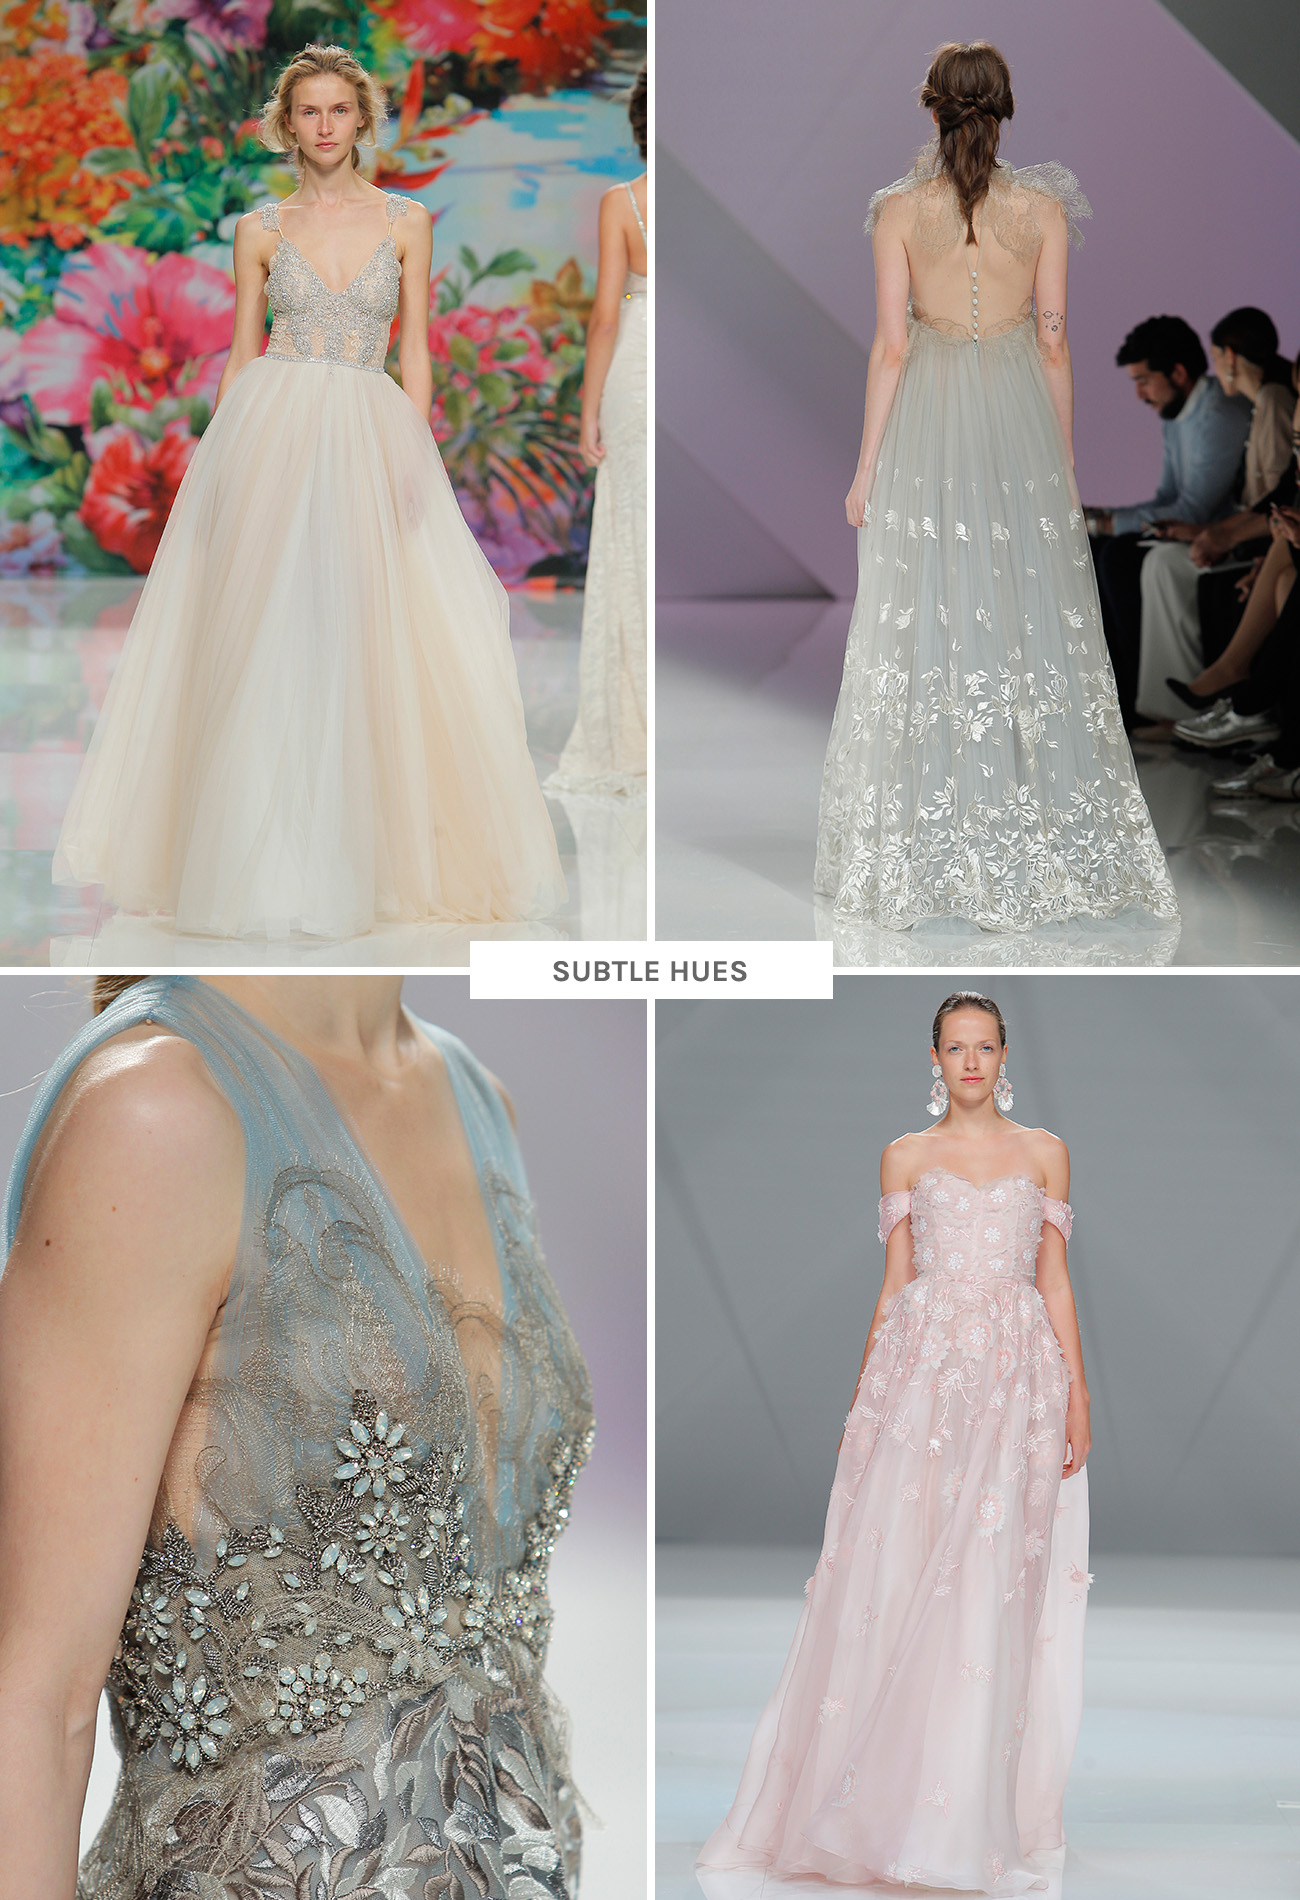 wedding dresses with subtle hues from Barcelona Bridal Week